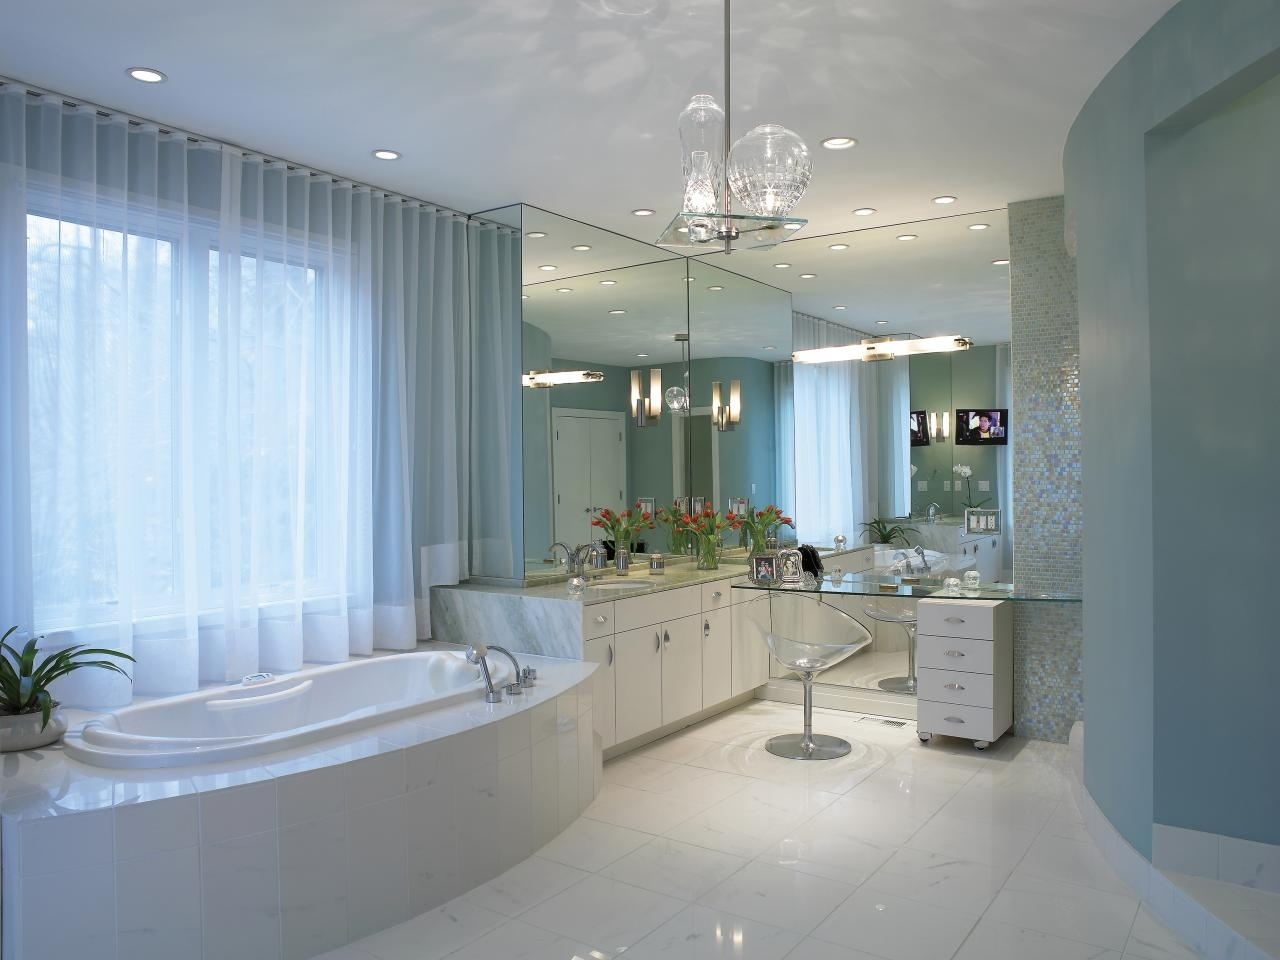 10 Most Recommended Jack And Jill Bathroom Ideas %name